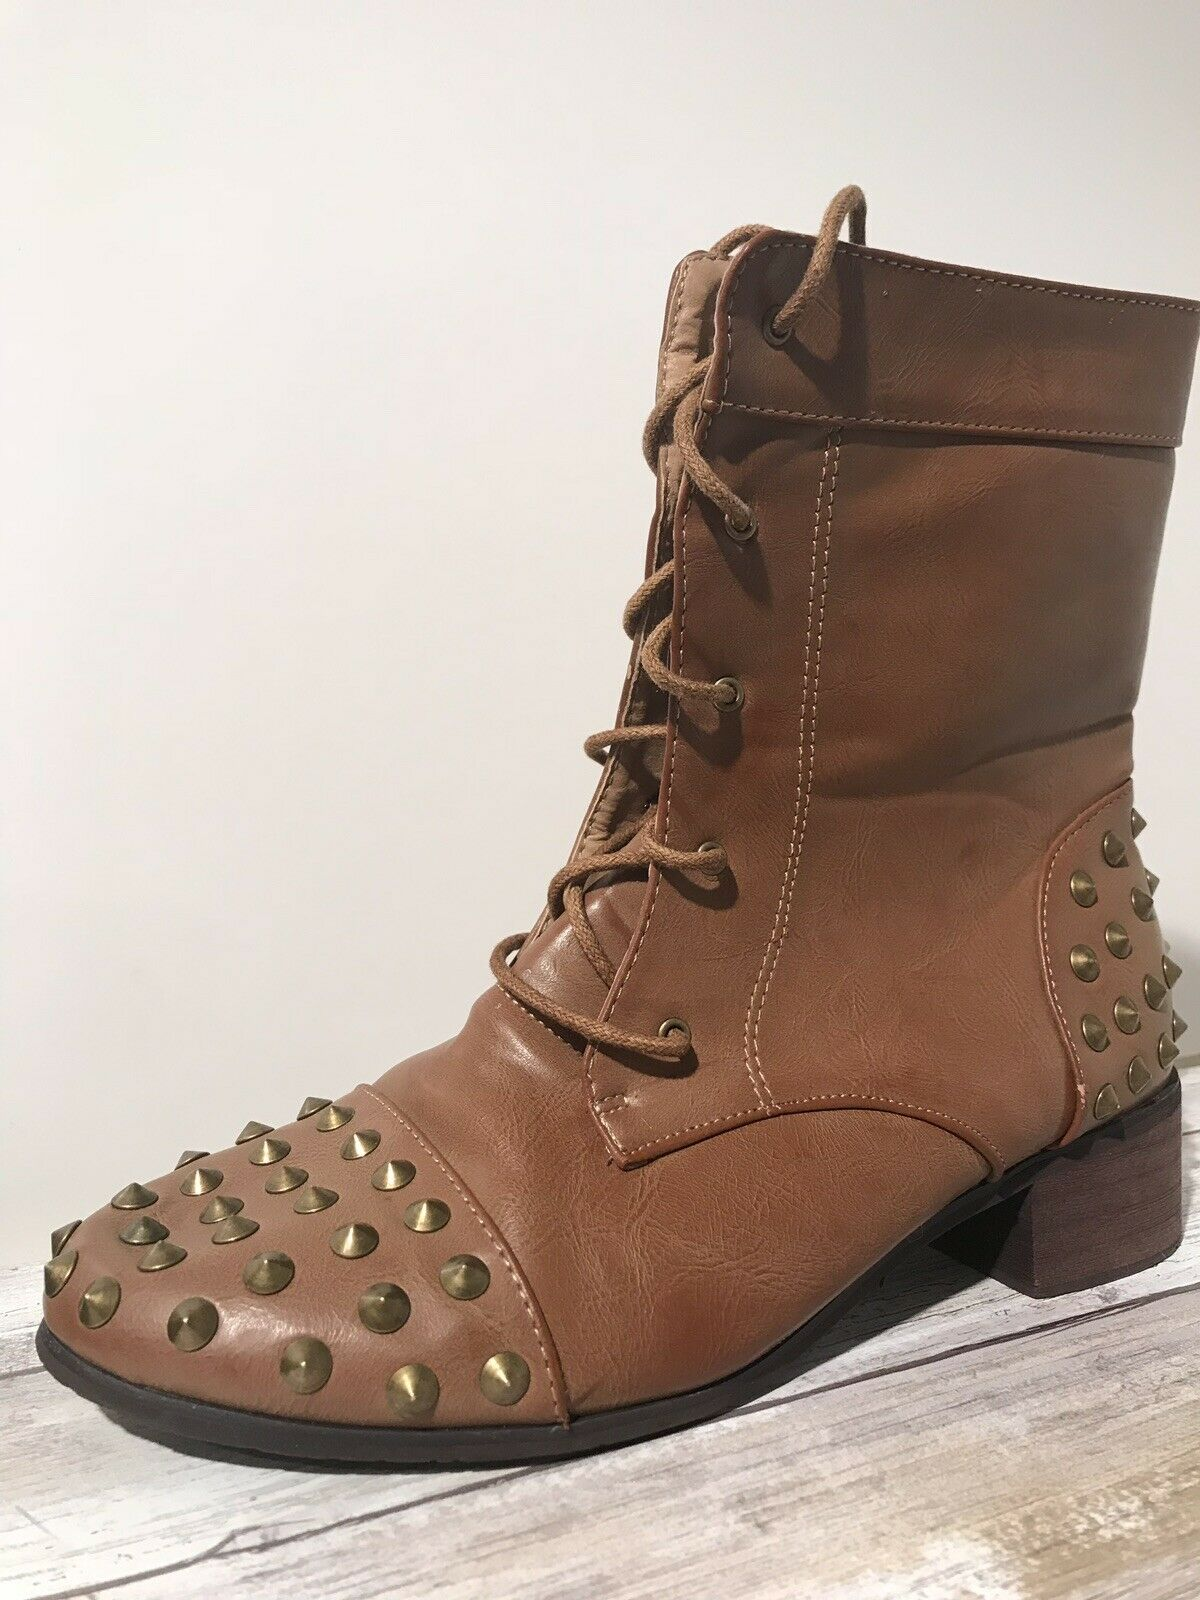 Women's Combat Boots Size 8 - Brown Cognac Leather & gold Studded Heel & Toe